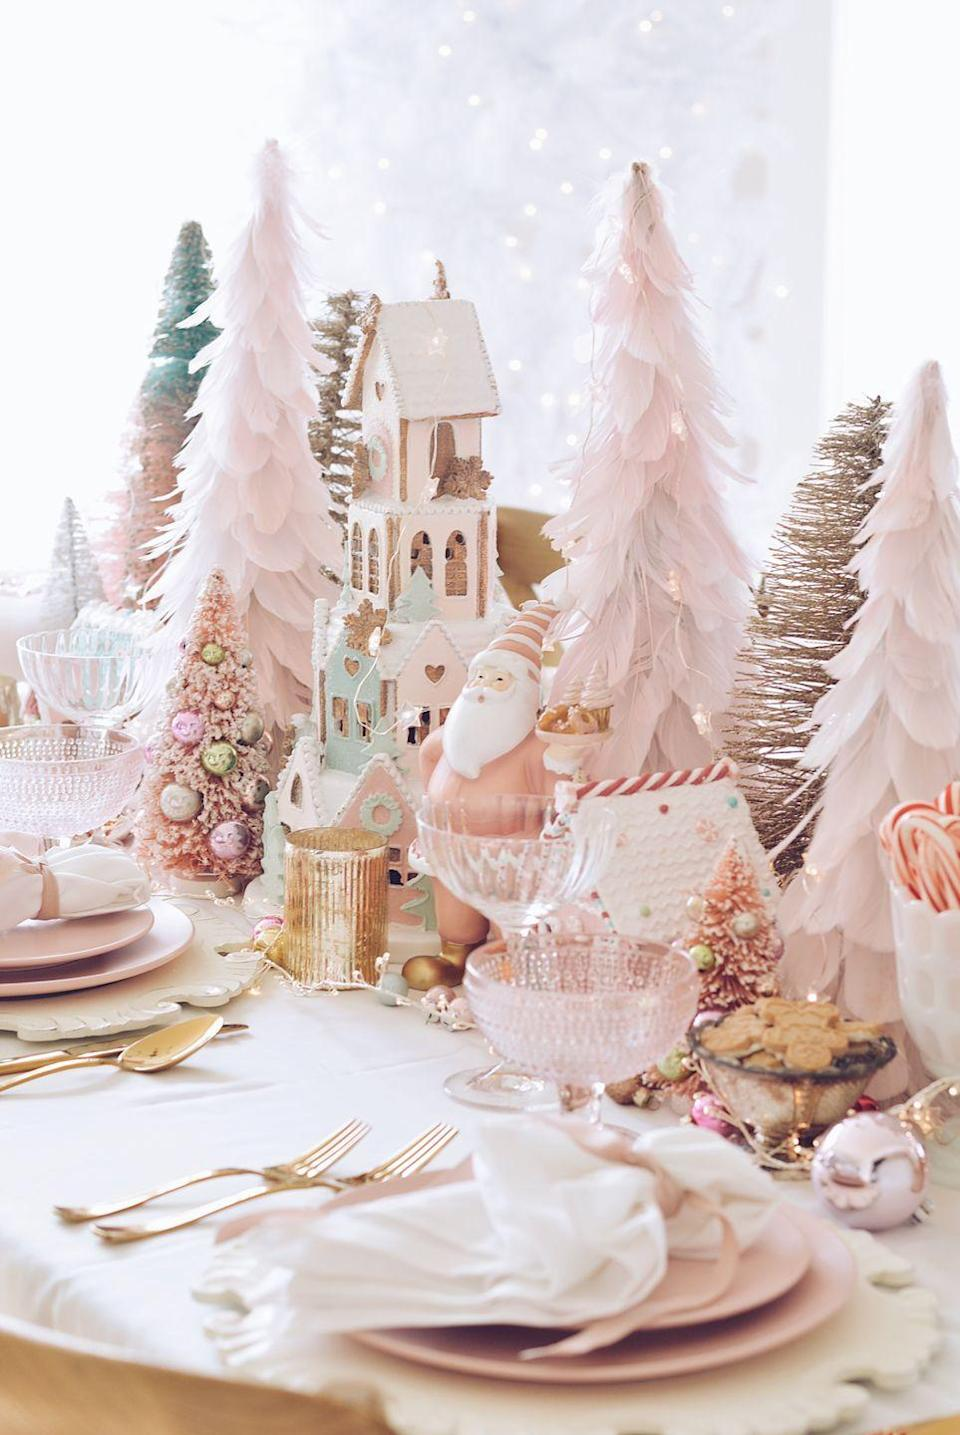 "<p>Looking for a low-maintenance way to make a big statement? Add a monochromatic centerpiece to your setup. The key is to experiment with an array of different textures. </p><p><a href=""https://www.thepinkdream.com/pink-christmas-table-decorations/"" rel=""nofollow noopener"" target=""_blank"" data-ylk=""slk:Via The Pink Dream"" class=""link rapid-noclick-resp""><em>Via The Pink Dream</em></a><br></p>"